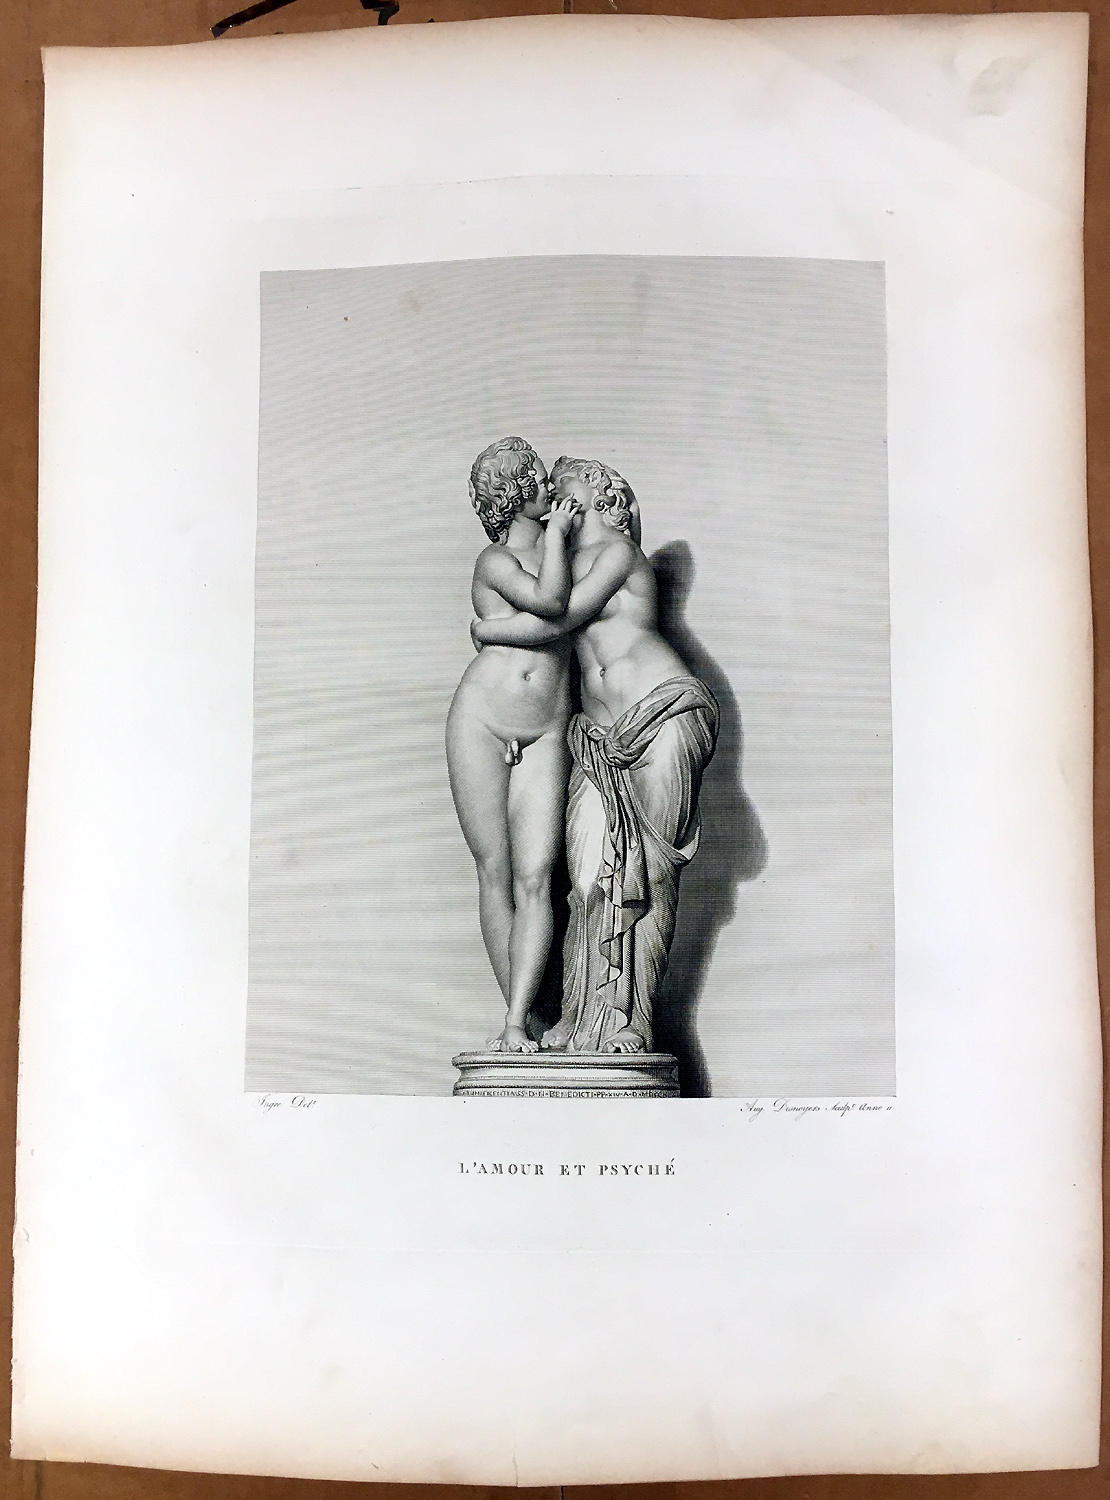 Details about naked nude boy girl cupid psyche kiss 1830 classic statue art print engraving